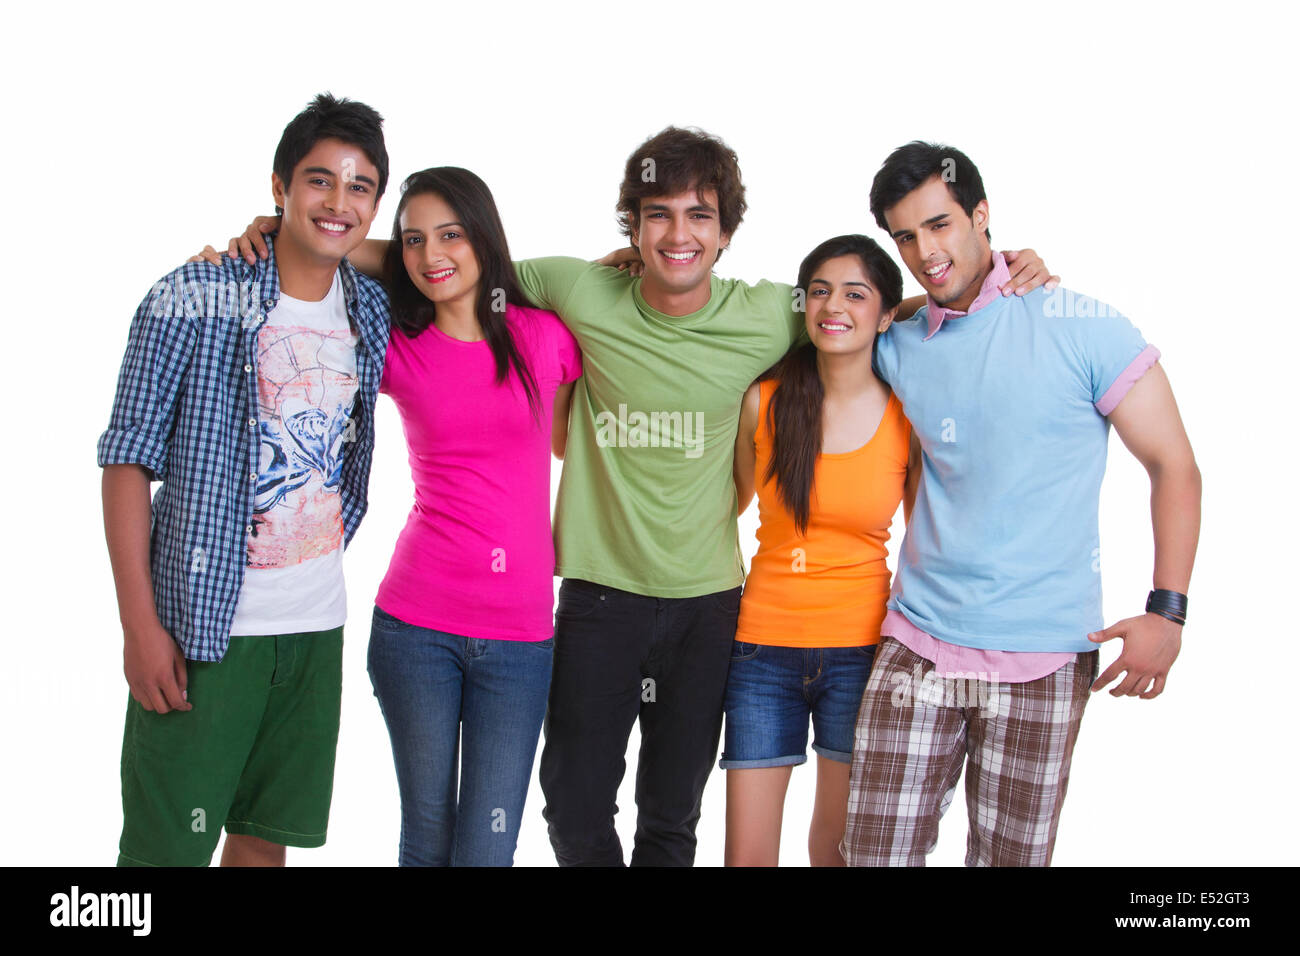 Portrait of young friends in casuals standing together isolated over white background - Stock Image